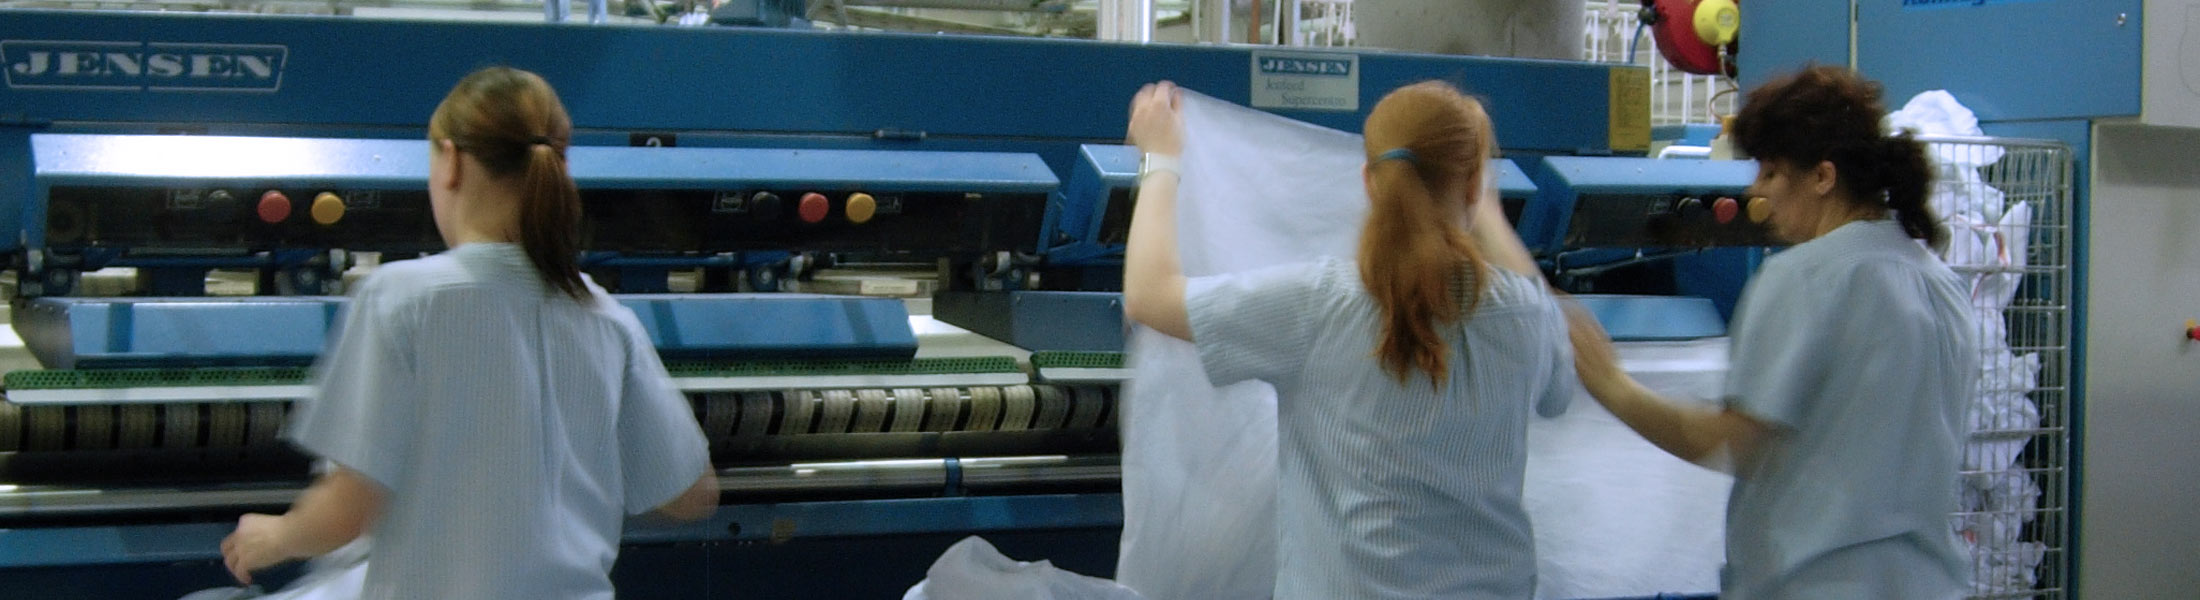 Laundry workers sorting linen